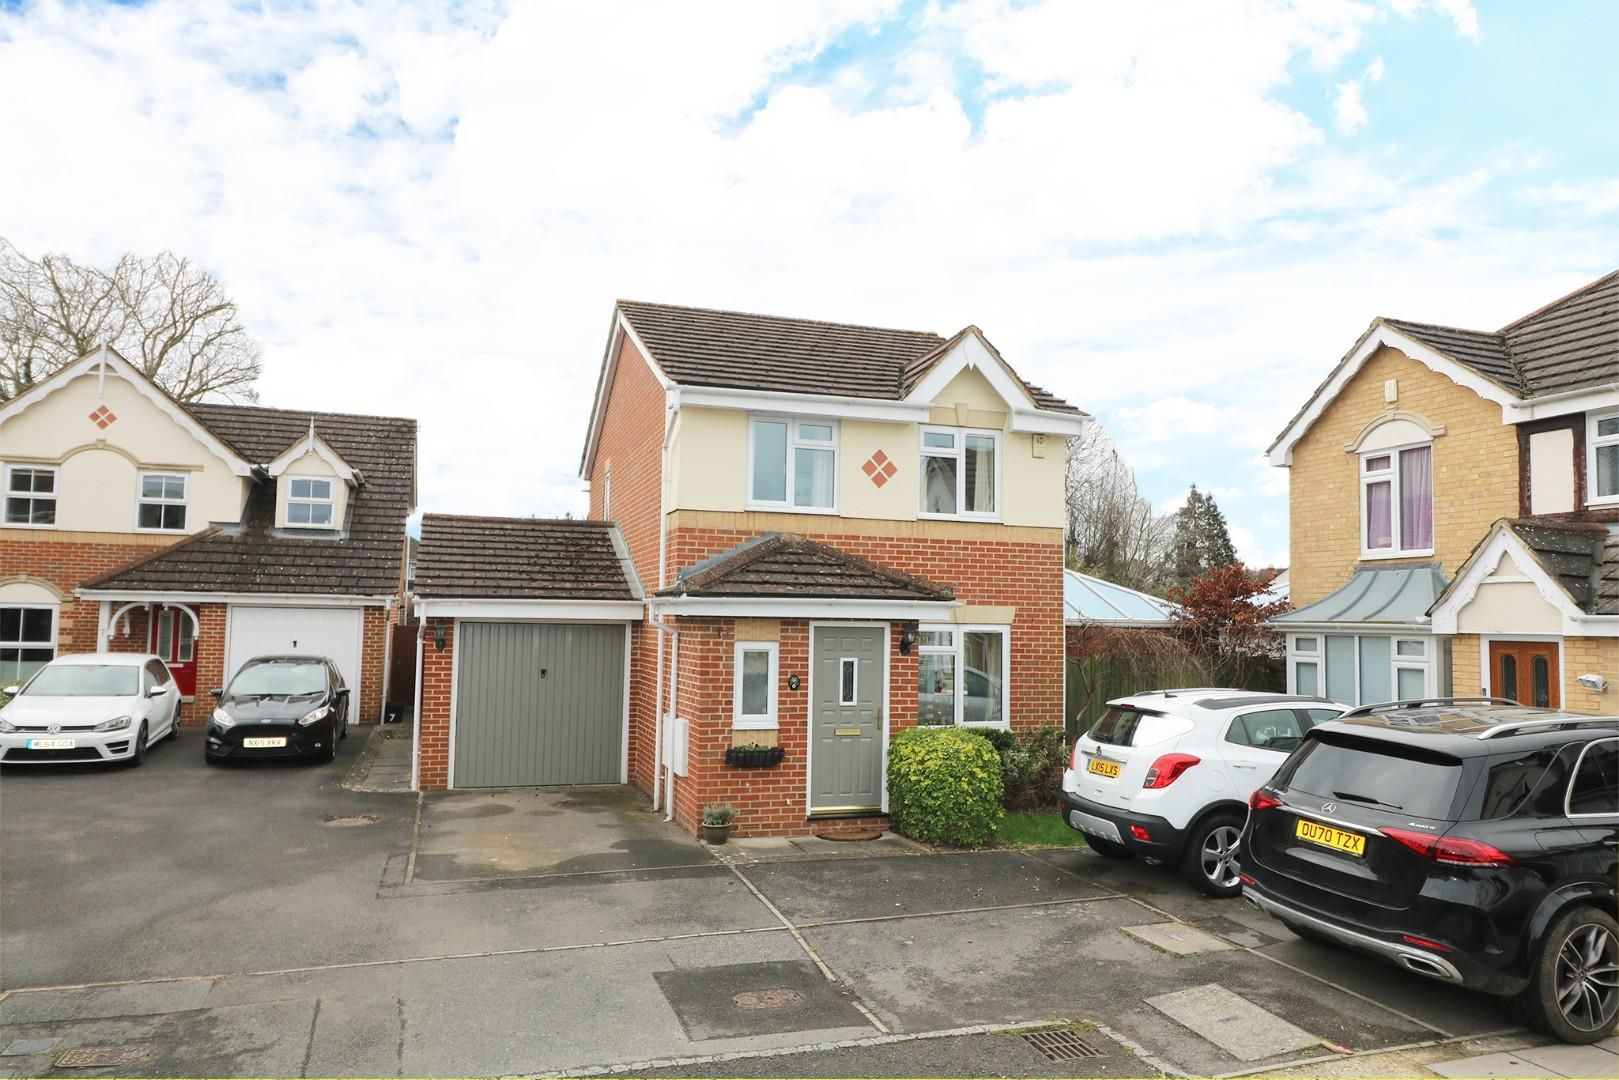 3 bed house for sale in Woodley 1